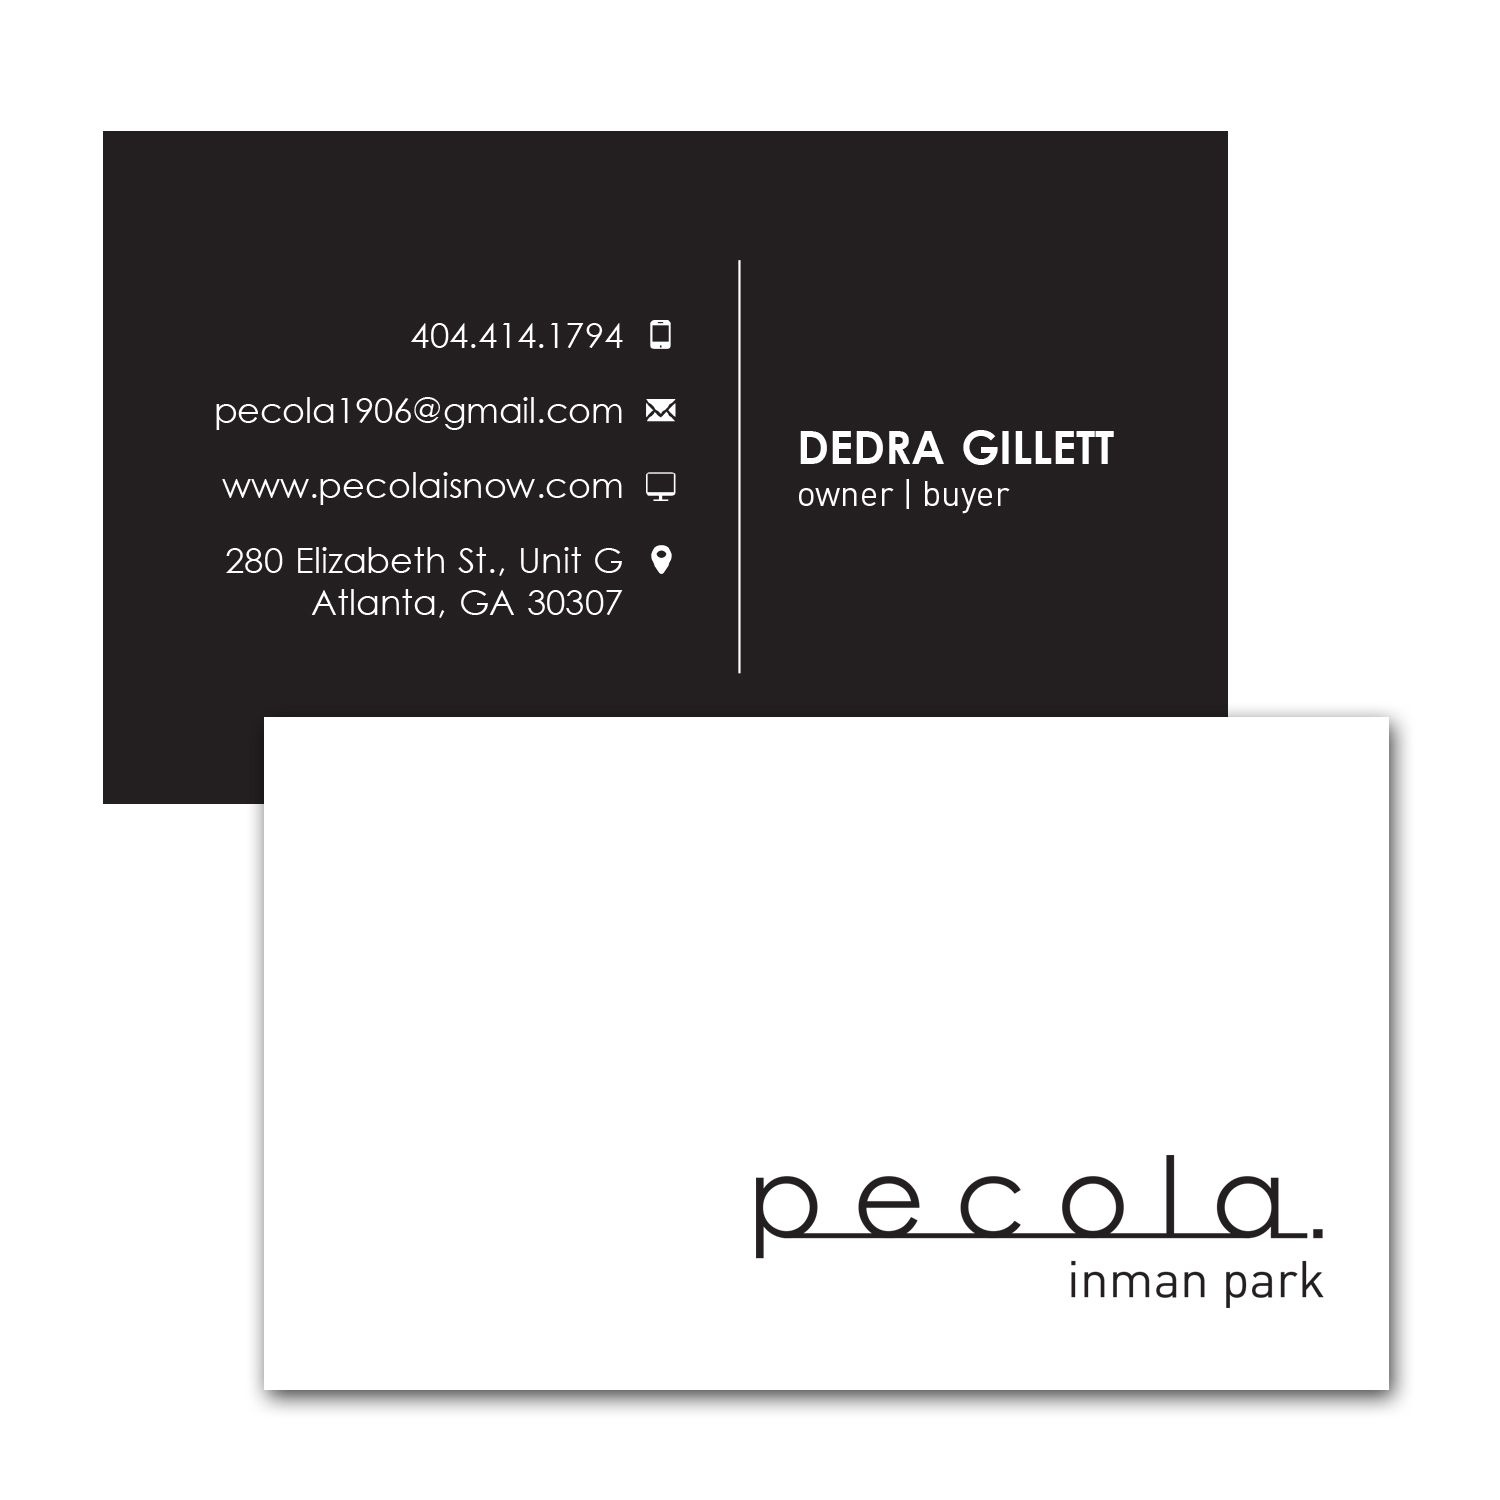 business card design for dress and art boutique in inman park